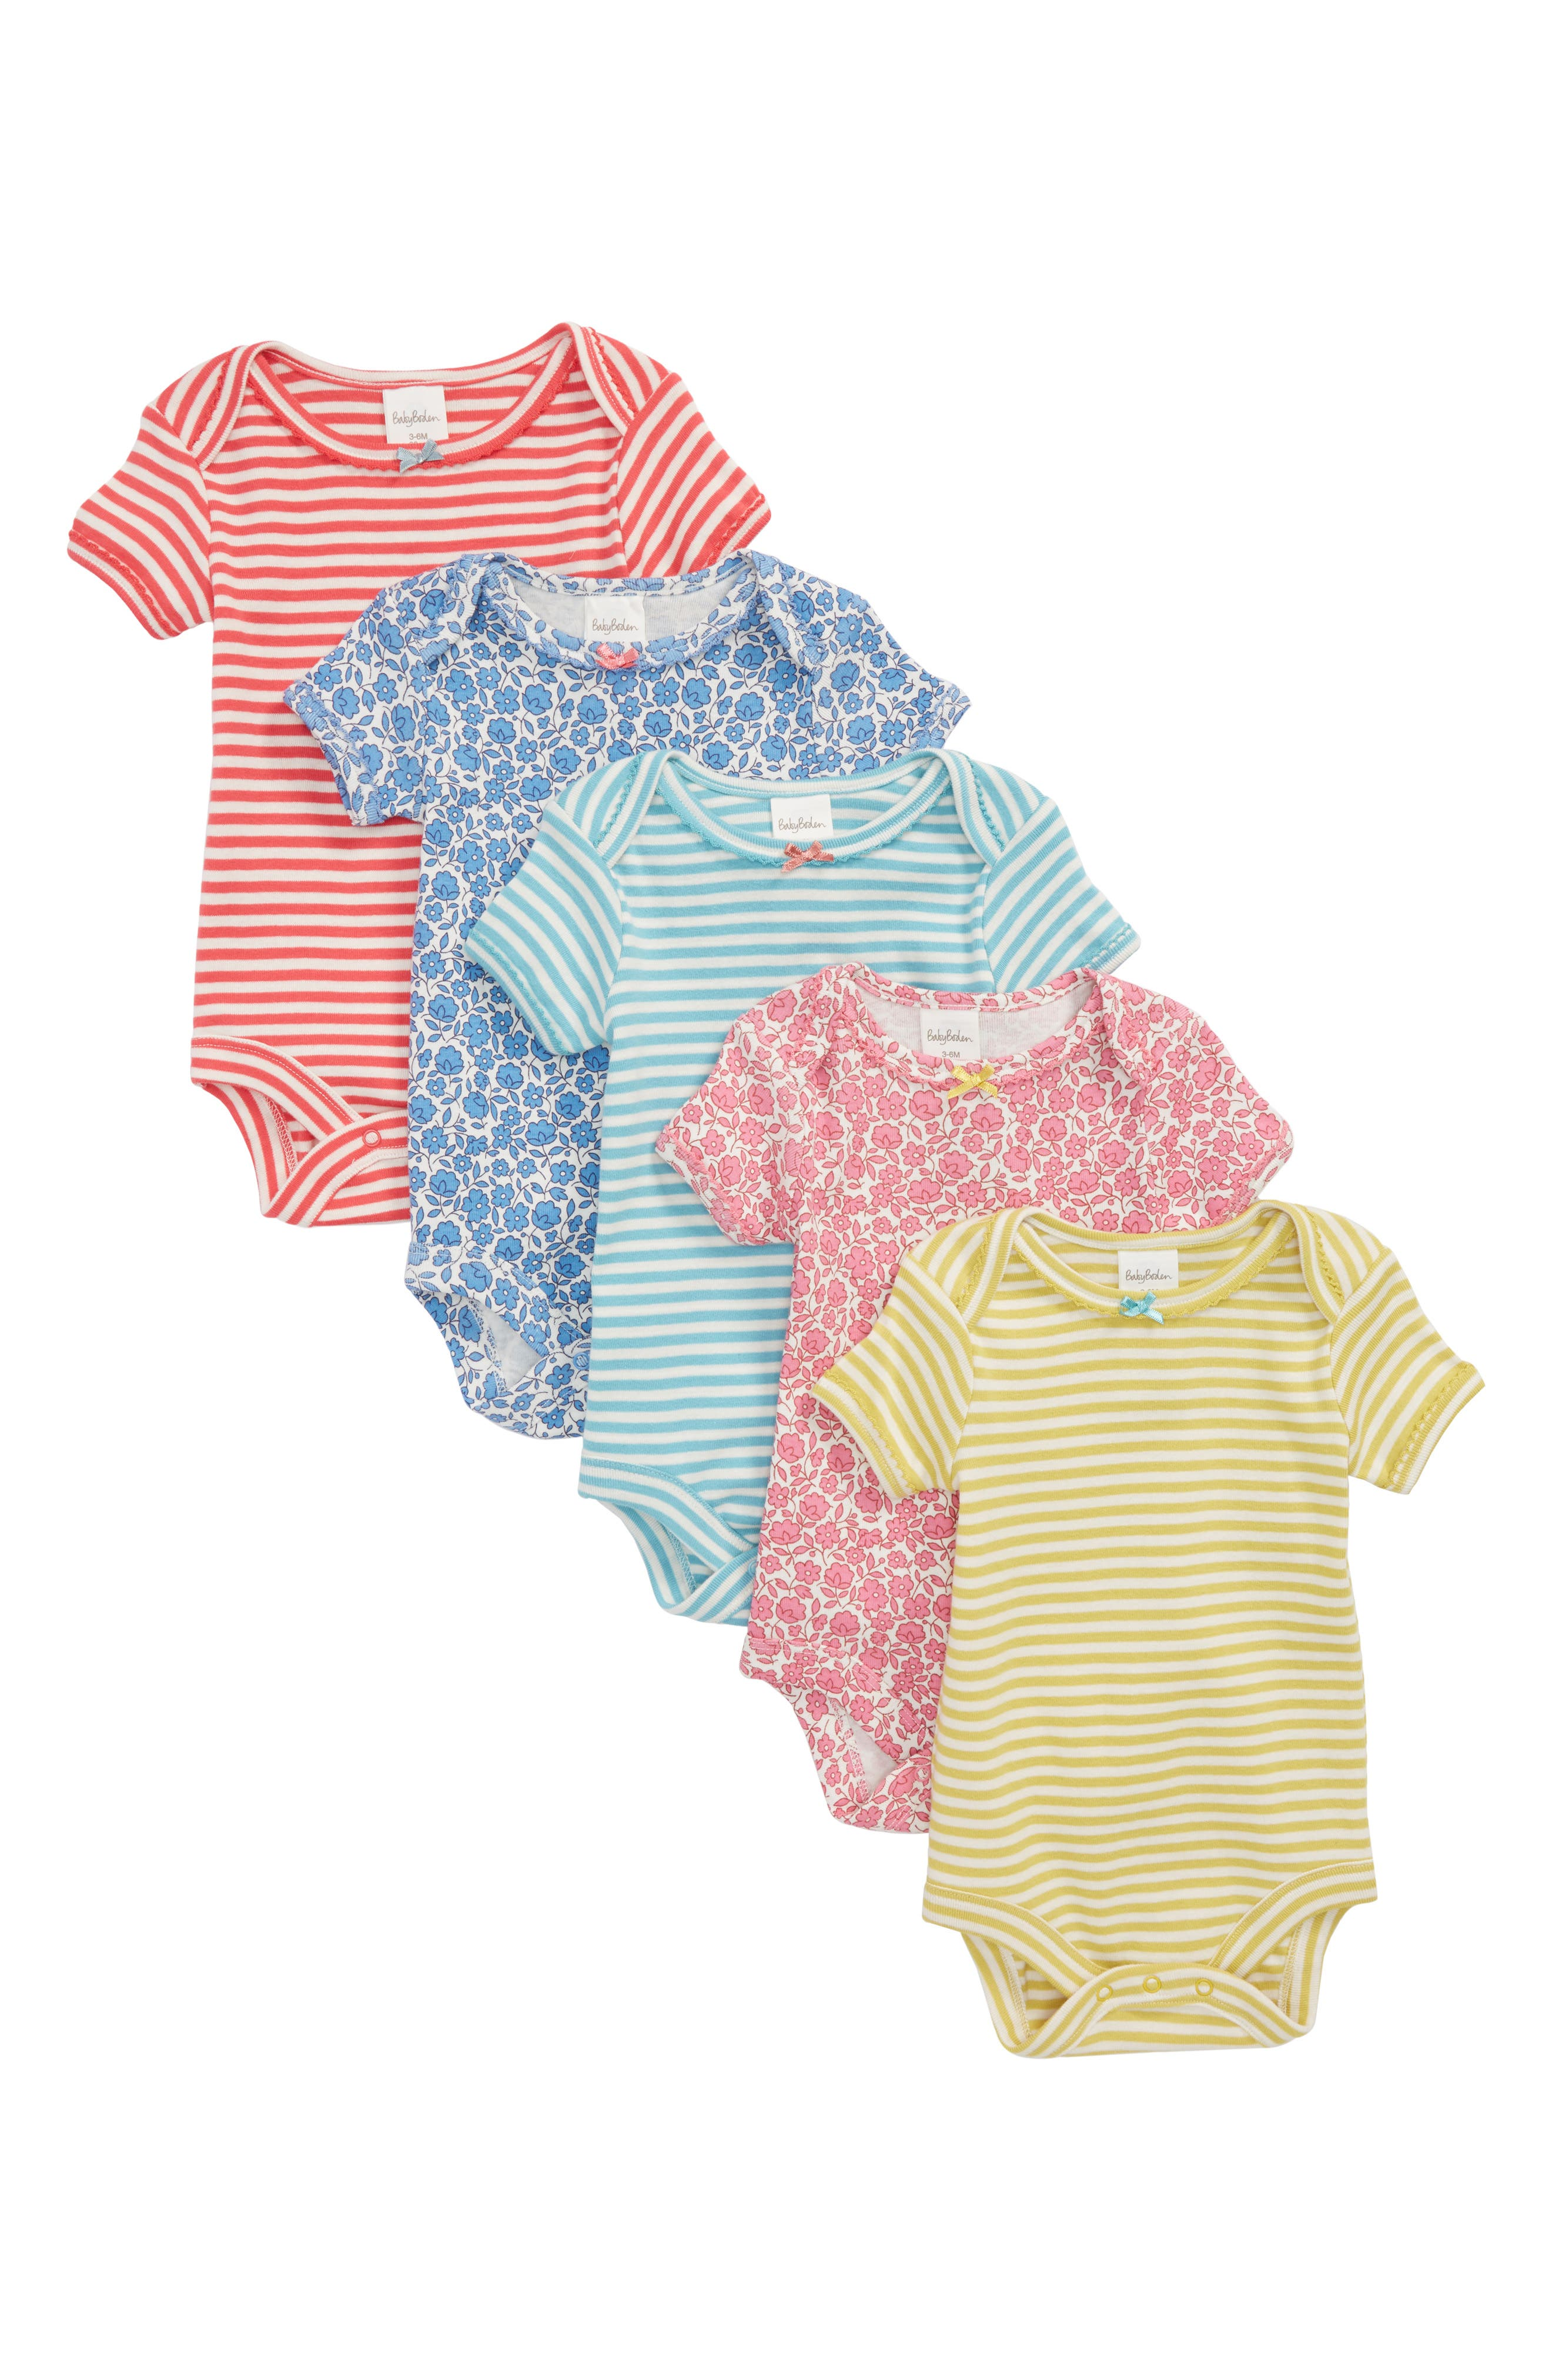 5-Pack Assorted Bodysuits,                             Main thumbnail 1, color,                             Lake Blue/ Floral Toile